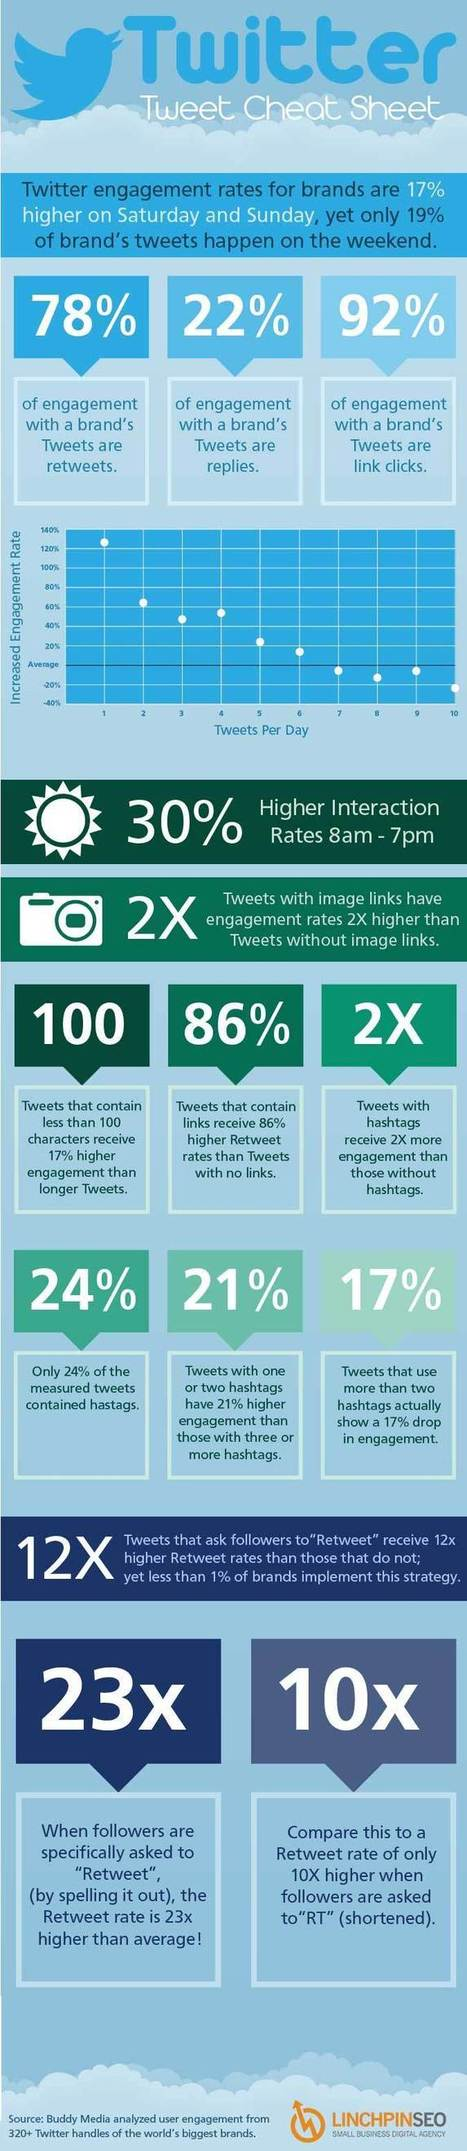 Is an Image Really Worth 1,000 Words? Images in Tweets Boost Engagement : LucidCrew Austin | Marketing Thoughts & Ideas | Scoop.it